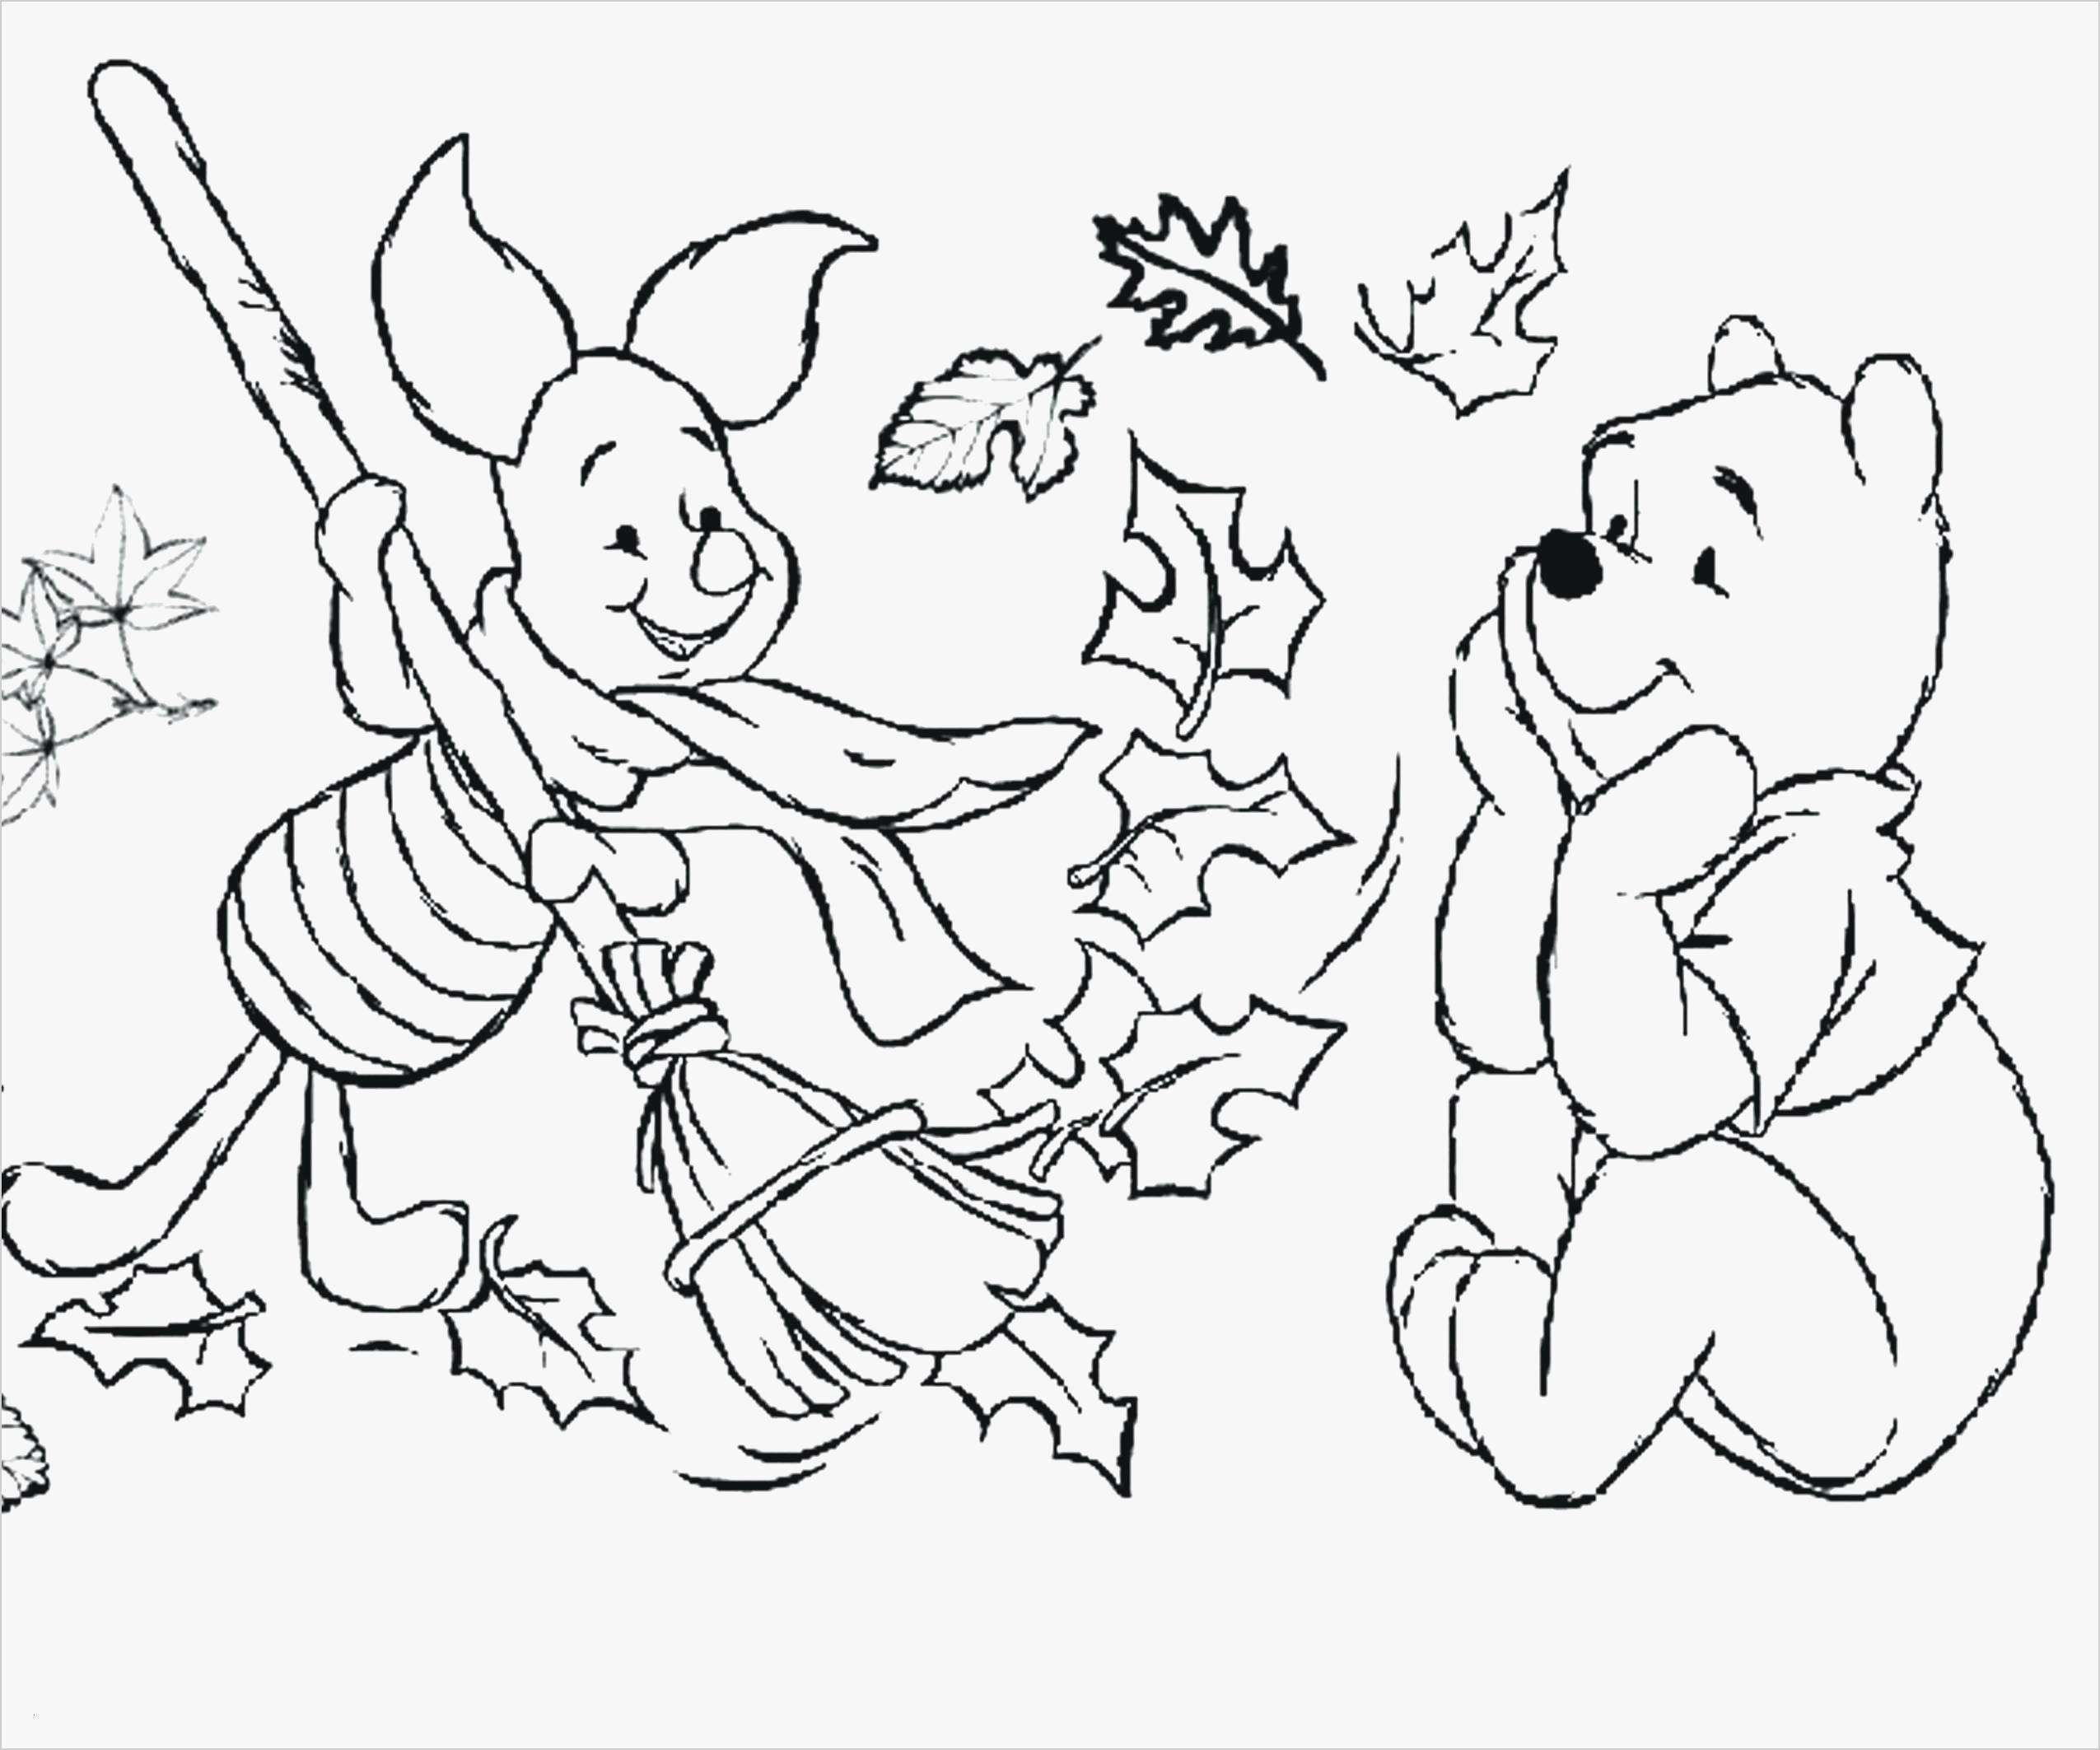 Lol Disney Coloring Pages Disney Lol Coloring Sheets Lol Disney Coloring Pages Lol Dis Unicorn Coloring Pages Animal Coloring Pages Halloween Coloring Pages